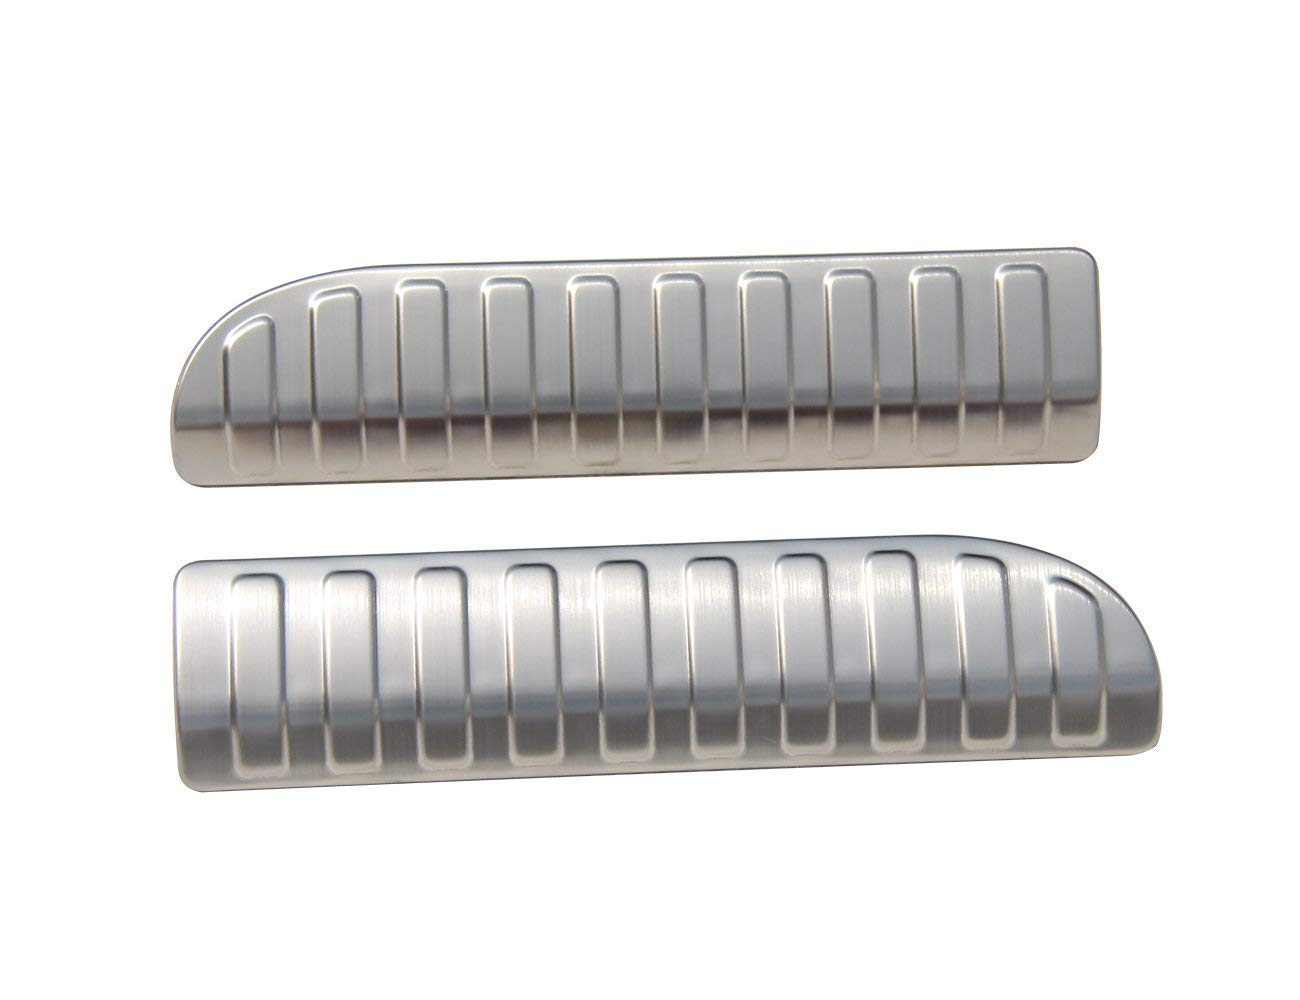 YIWANG 304 Stainless Rear Bumper Inner Sill Plate Protector Cover Trim For Land Rover Range Rover Sport 2014-2020